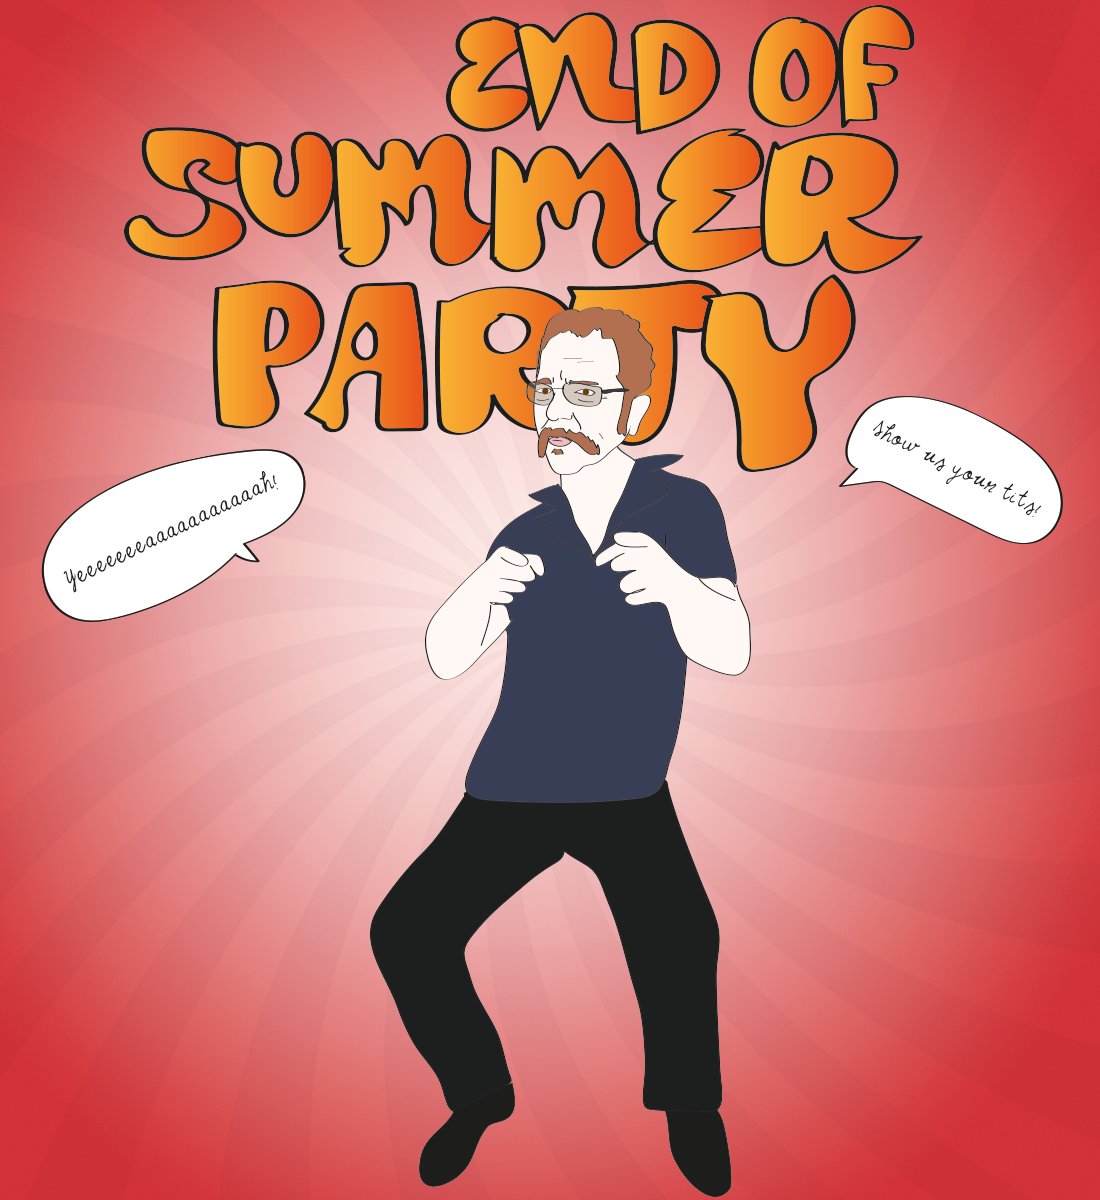 Ronnie Mund end of summer party illustration, Drawn for You